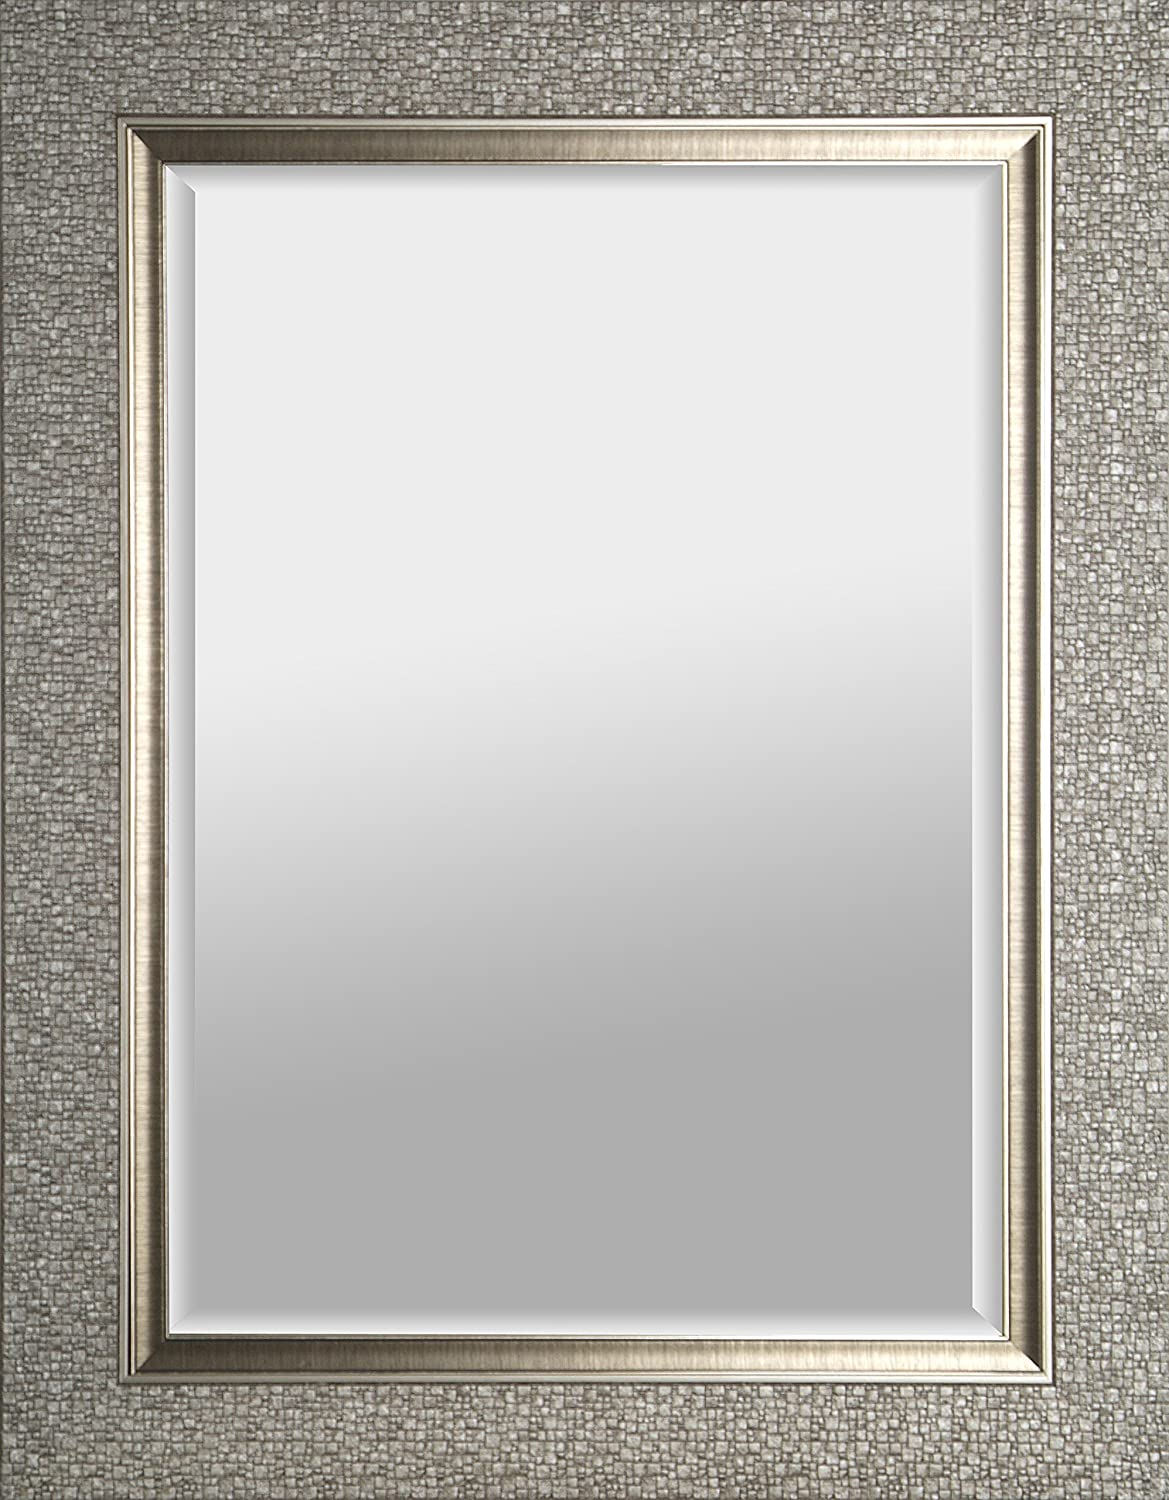 Amazon.com: Head West Crystal Mosaic Rectangle Mirror, 23-1/2 by 29 ...